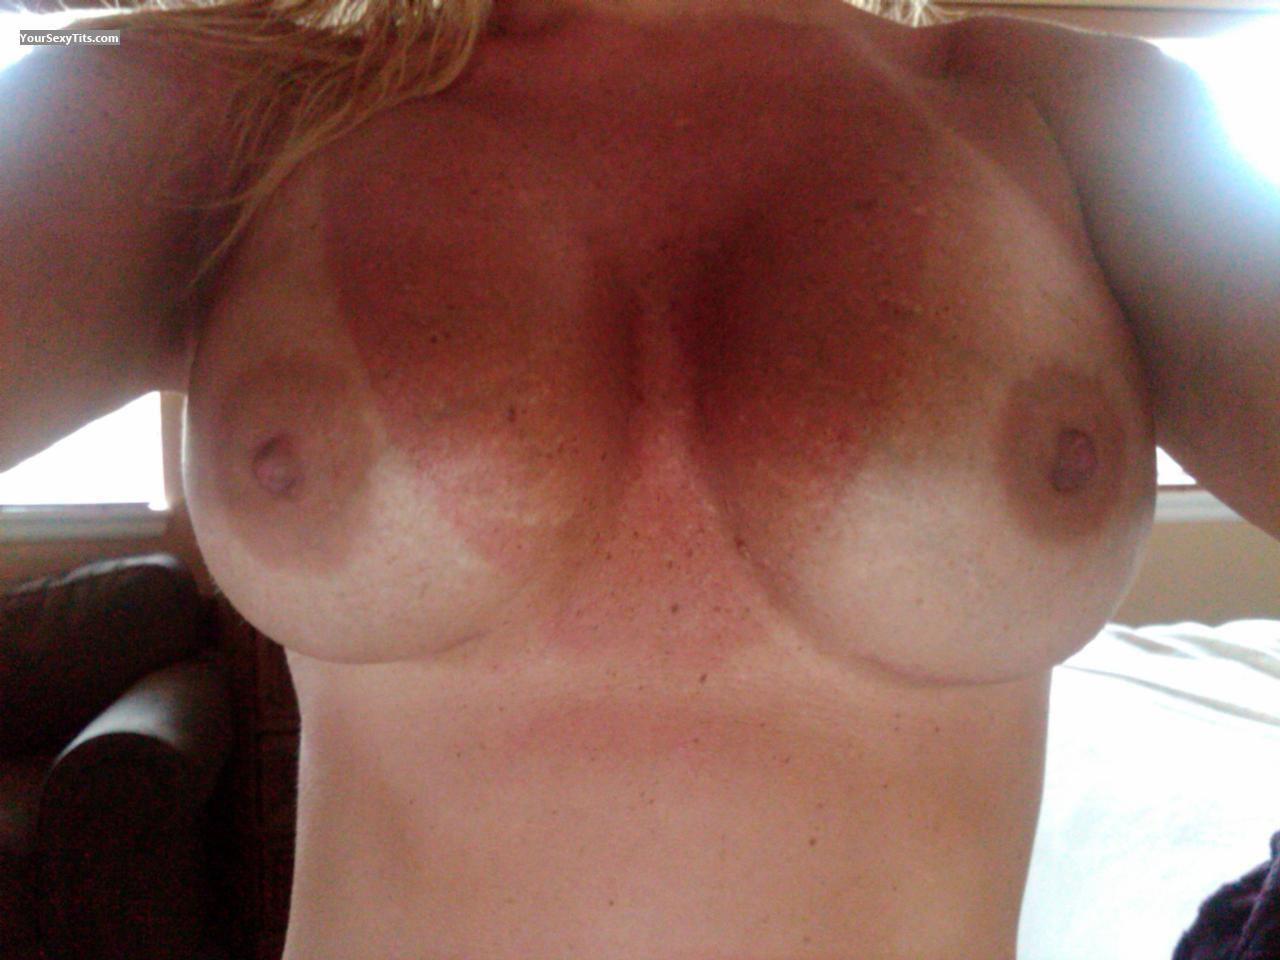 Tit Flash: My Very Big Tits (Selfie) - Flossy from United States